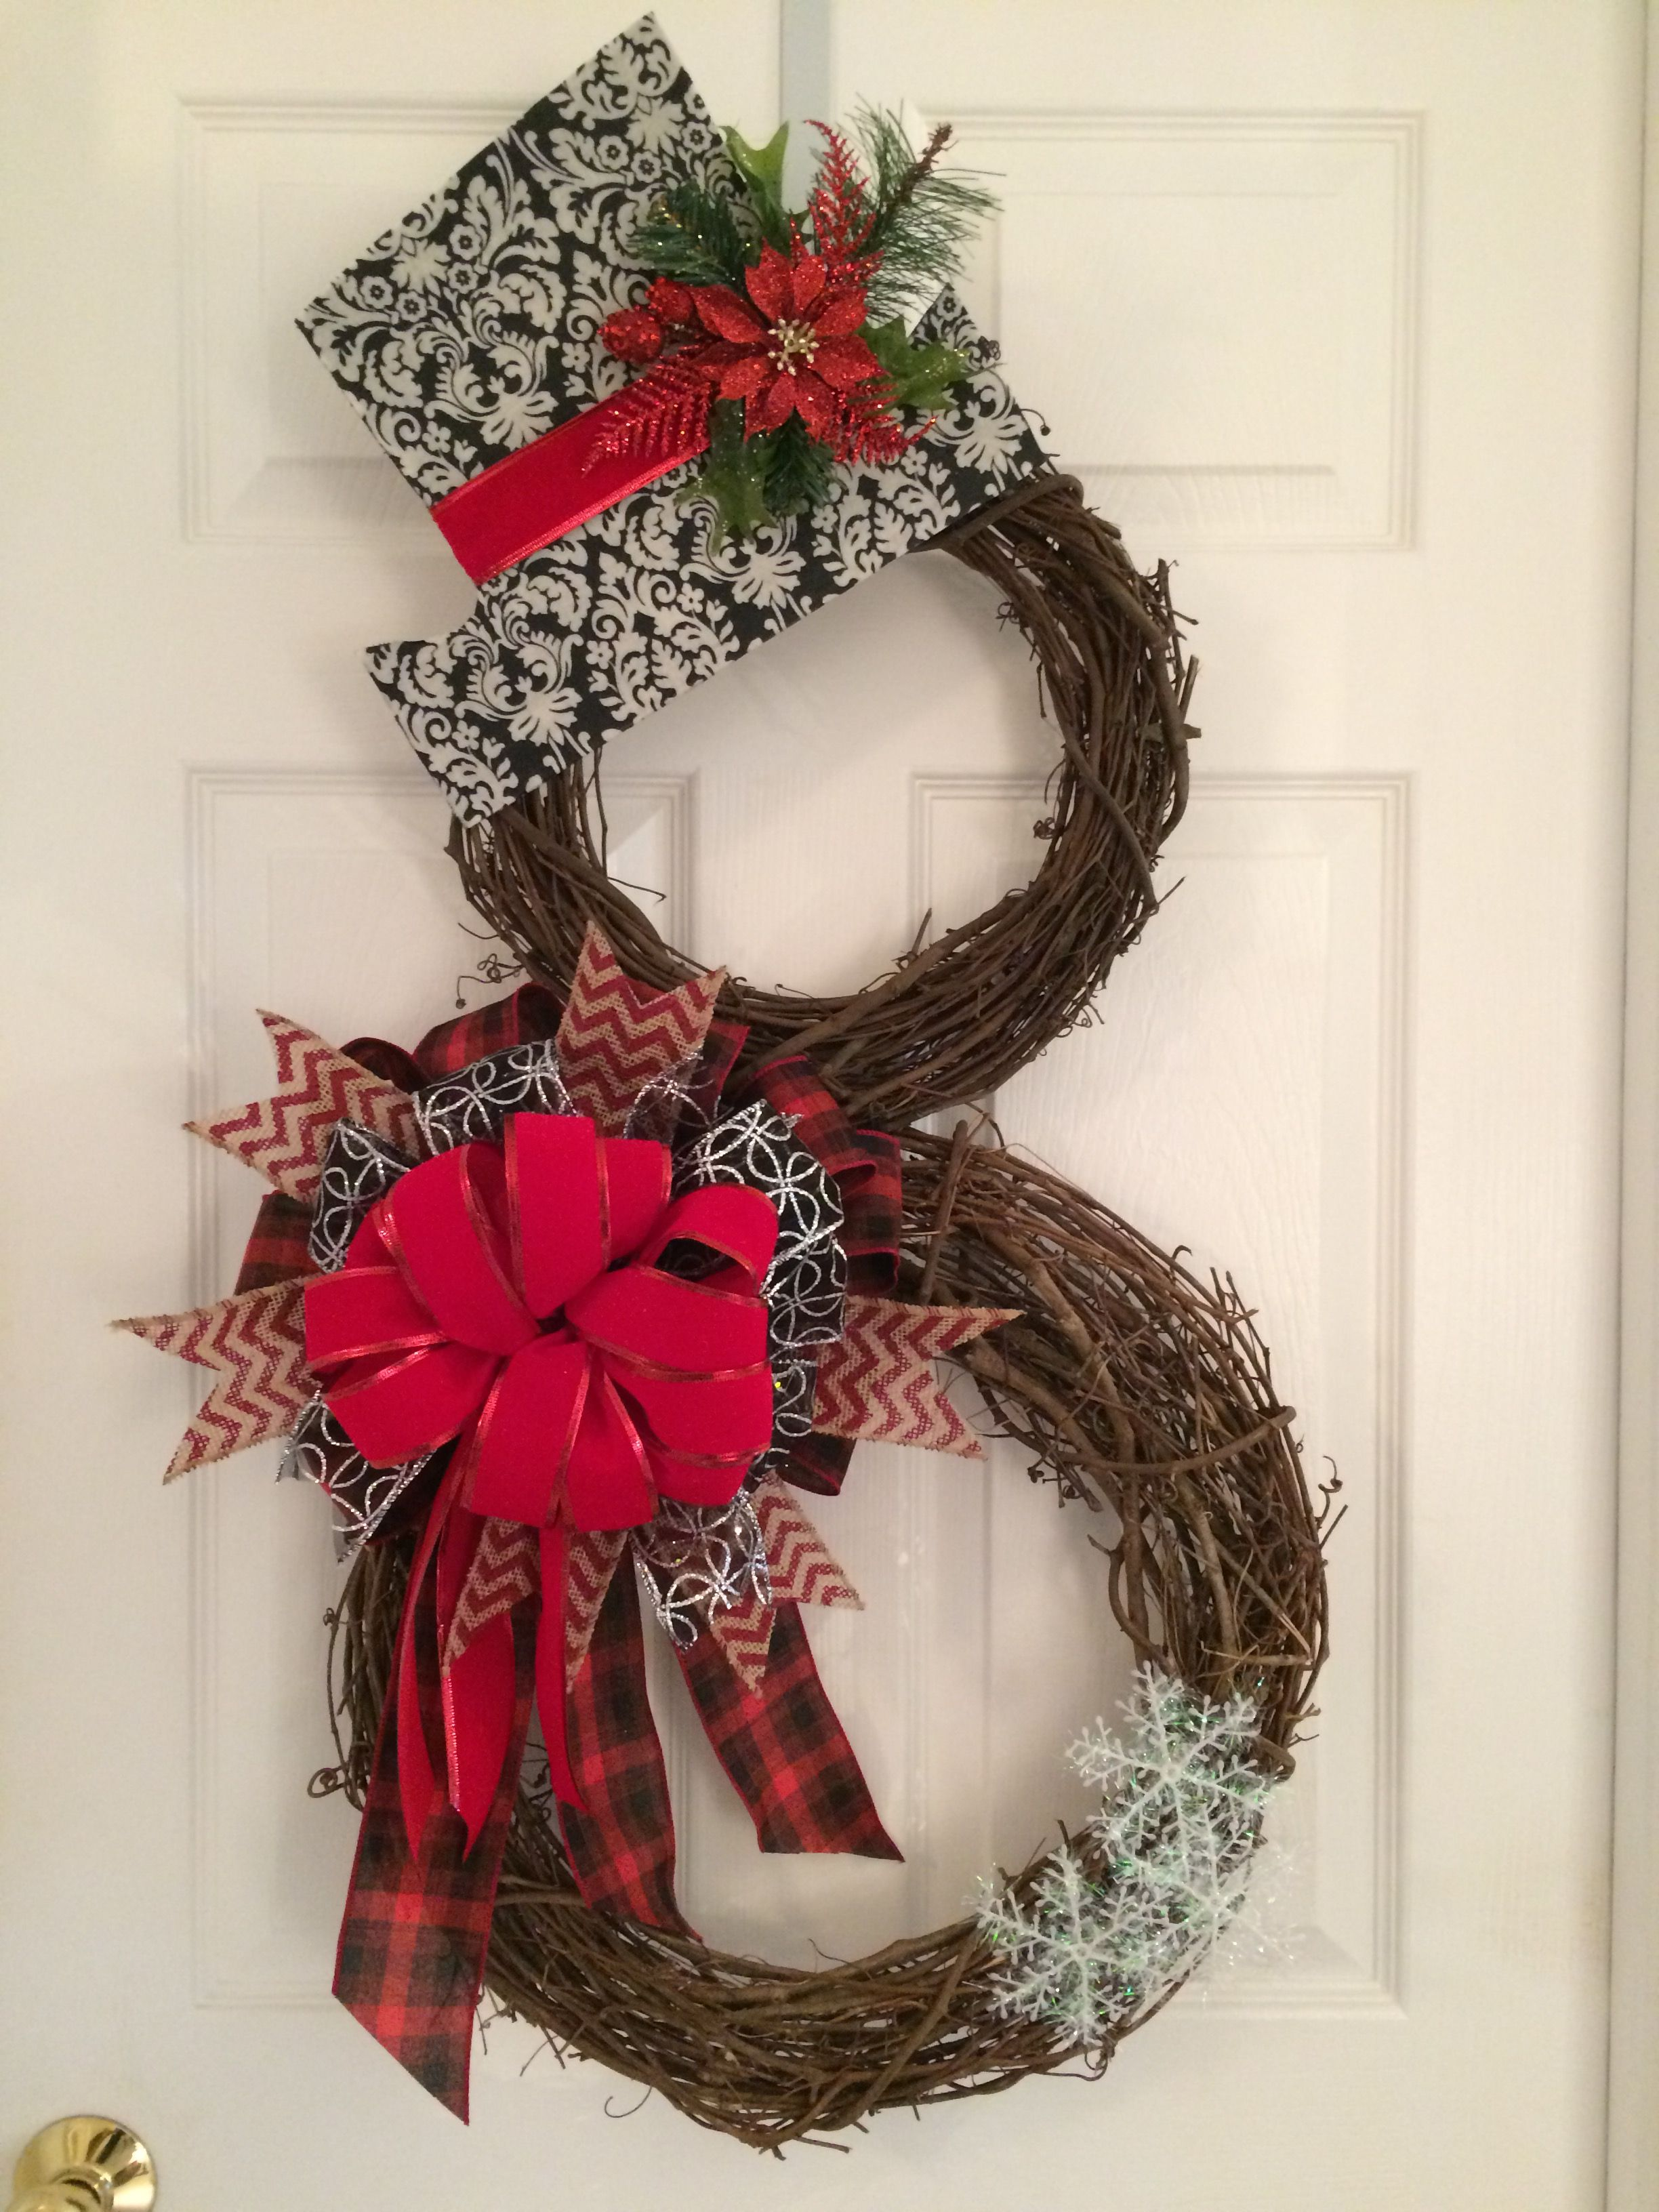 Snowman grapevine wreath. Christmas Wreaths Pinterest